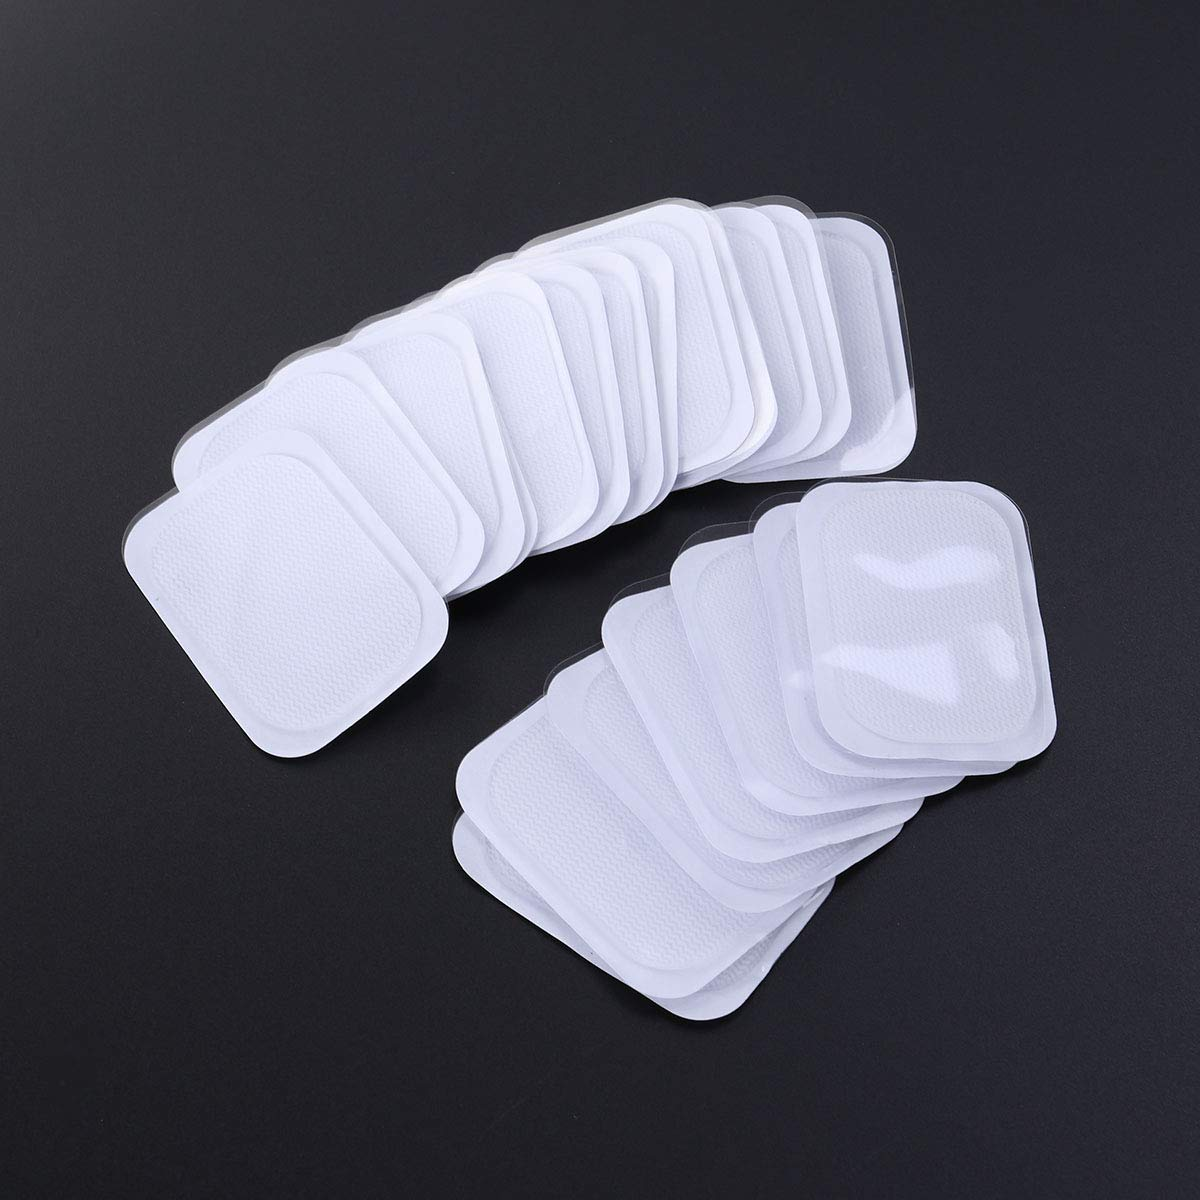 Exercise \u0026 Fitness Exercise \u0026 Fitness SUPVOX 20pcs Abs Trainer Replacement Gel Sheet Pads ...